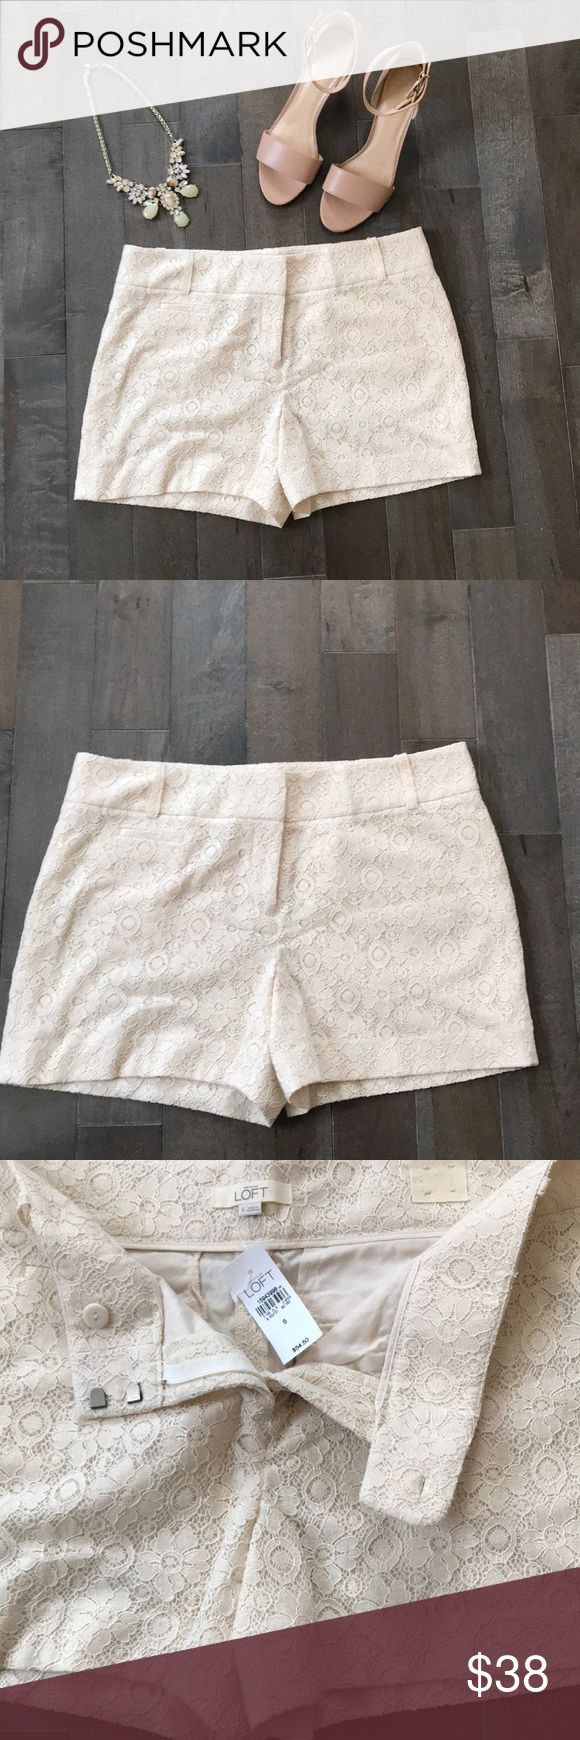 Shorts Ann Taylor loft cream lace shorts. Brand NWT. In excellent condition. Inseam is 4 inches. LOFT Shorts